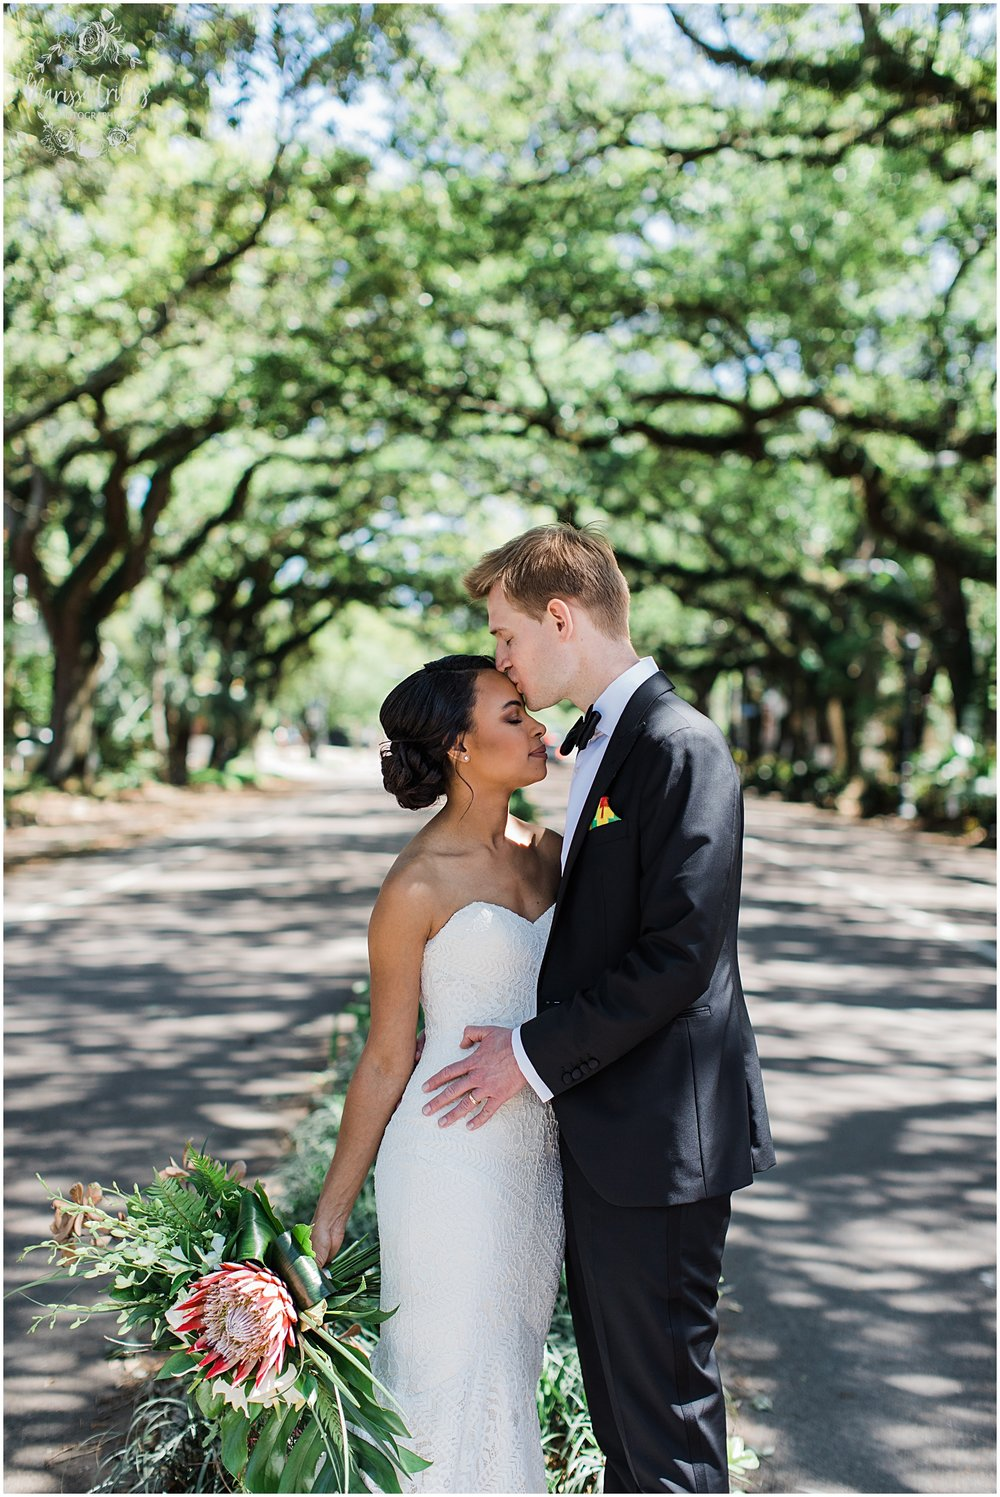 NEW ORLEANS WEDDING | BENACHI HOUSE | SARAH & MICHAEL | MARISSA CRIBBS PHOTOGRAPHY_4424.jpg